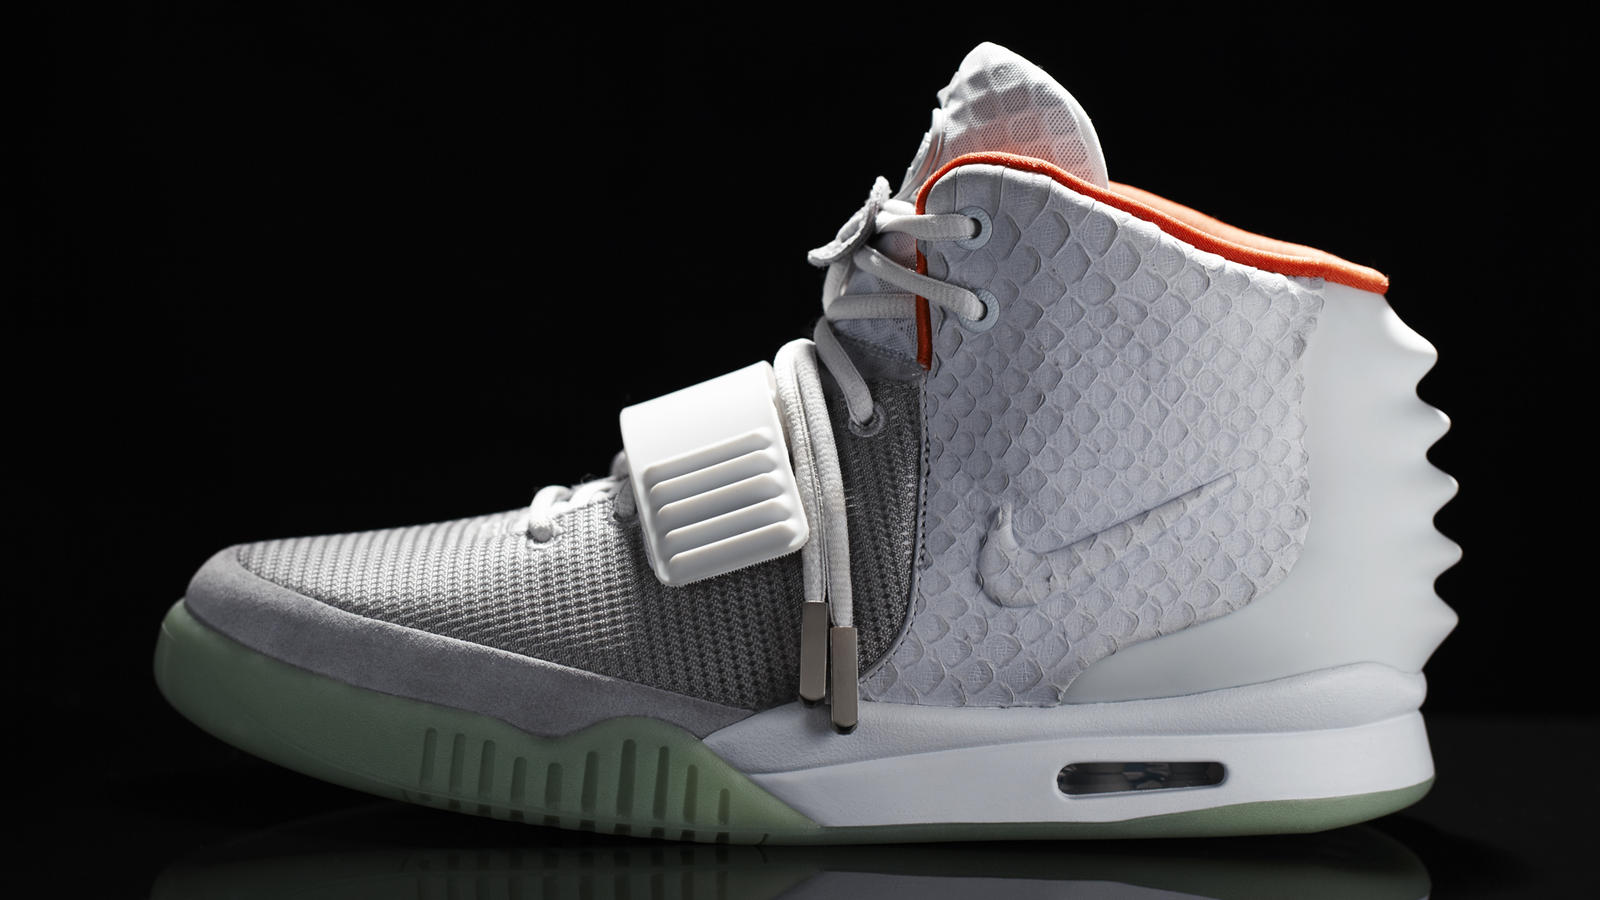 cedf382c5324 Nike Air Yeezy II Profile. Nike Air Yeezy II Sole.  Nike Air Yeezy II Tongue. Nike Air Yeezy II Pair.  Nike Air Yeezy II Profile. Nike Air Yeezy II Sketch